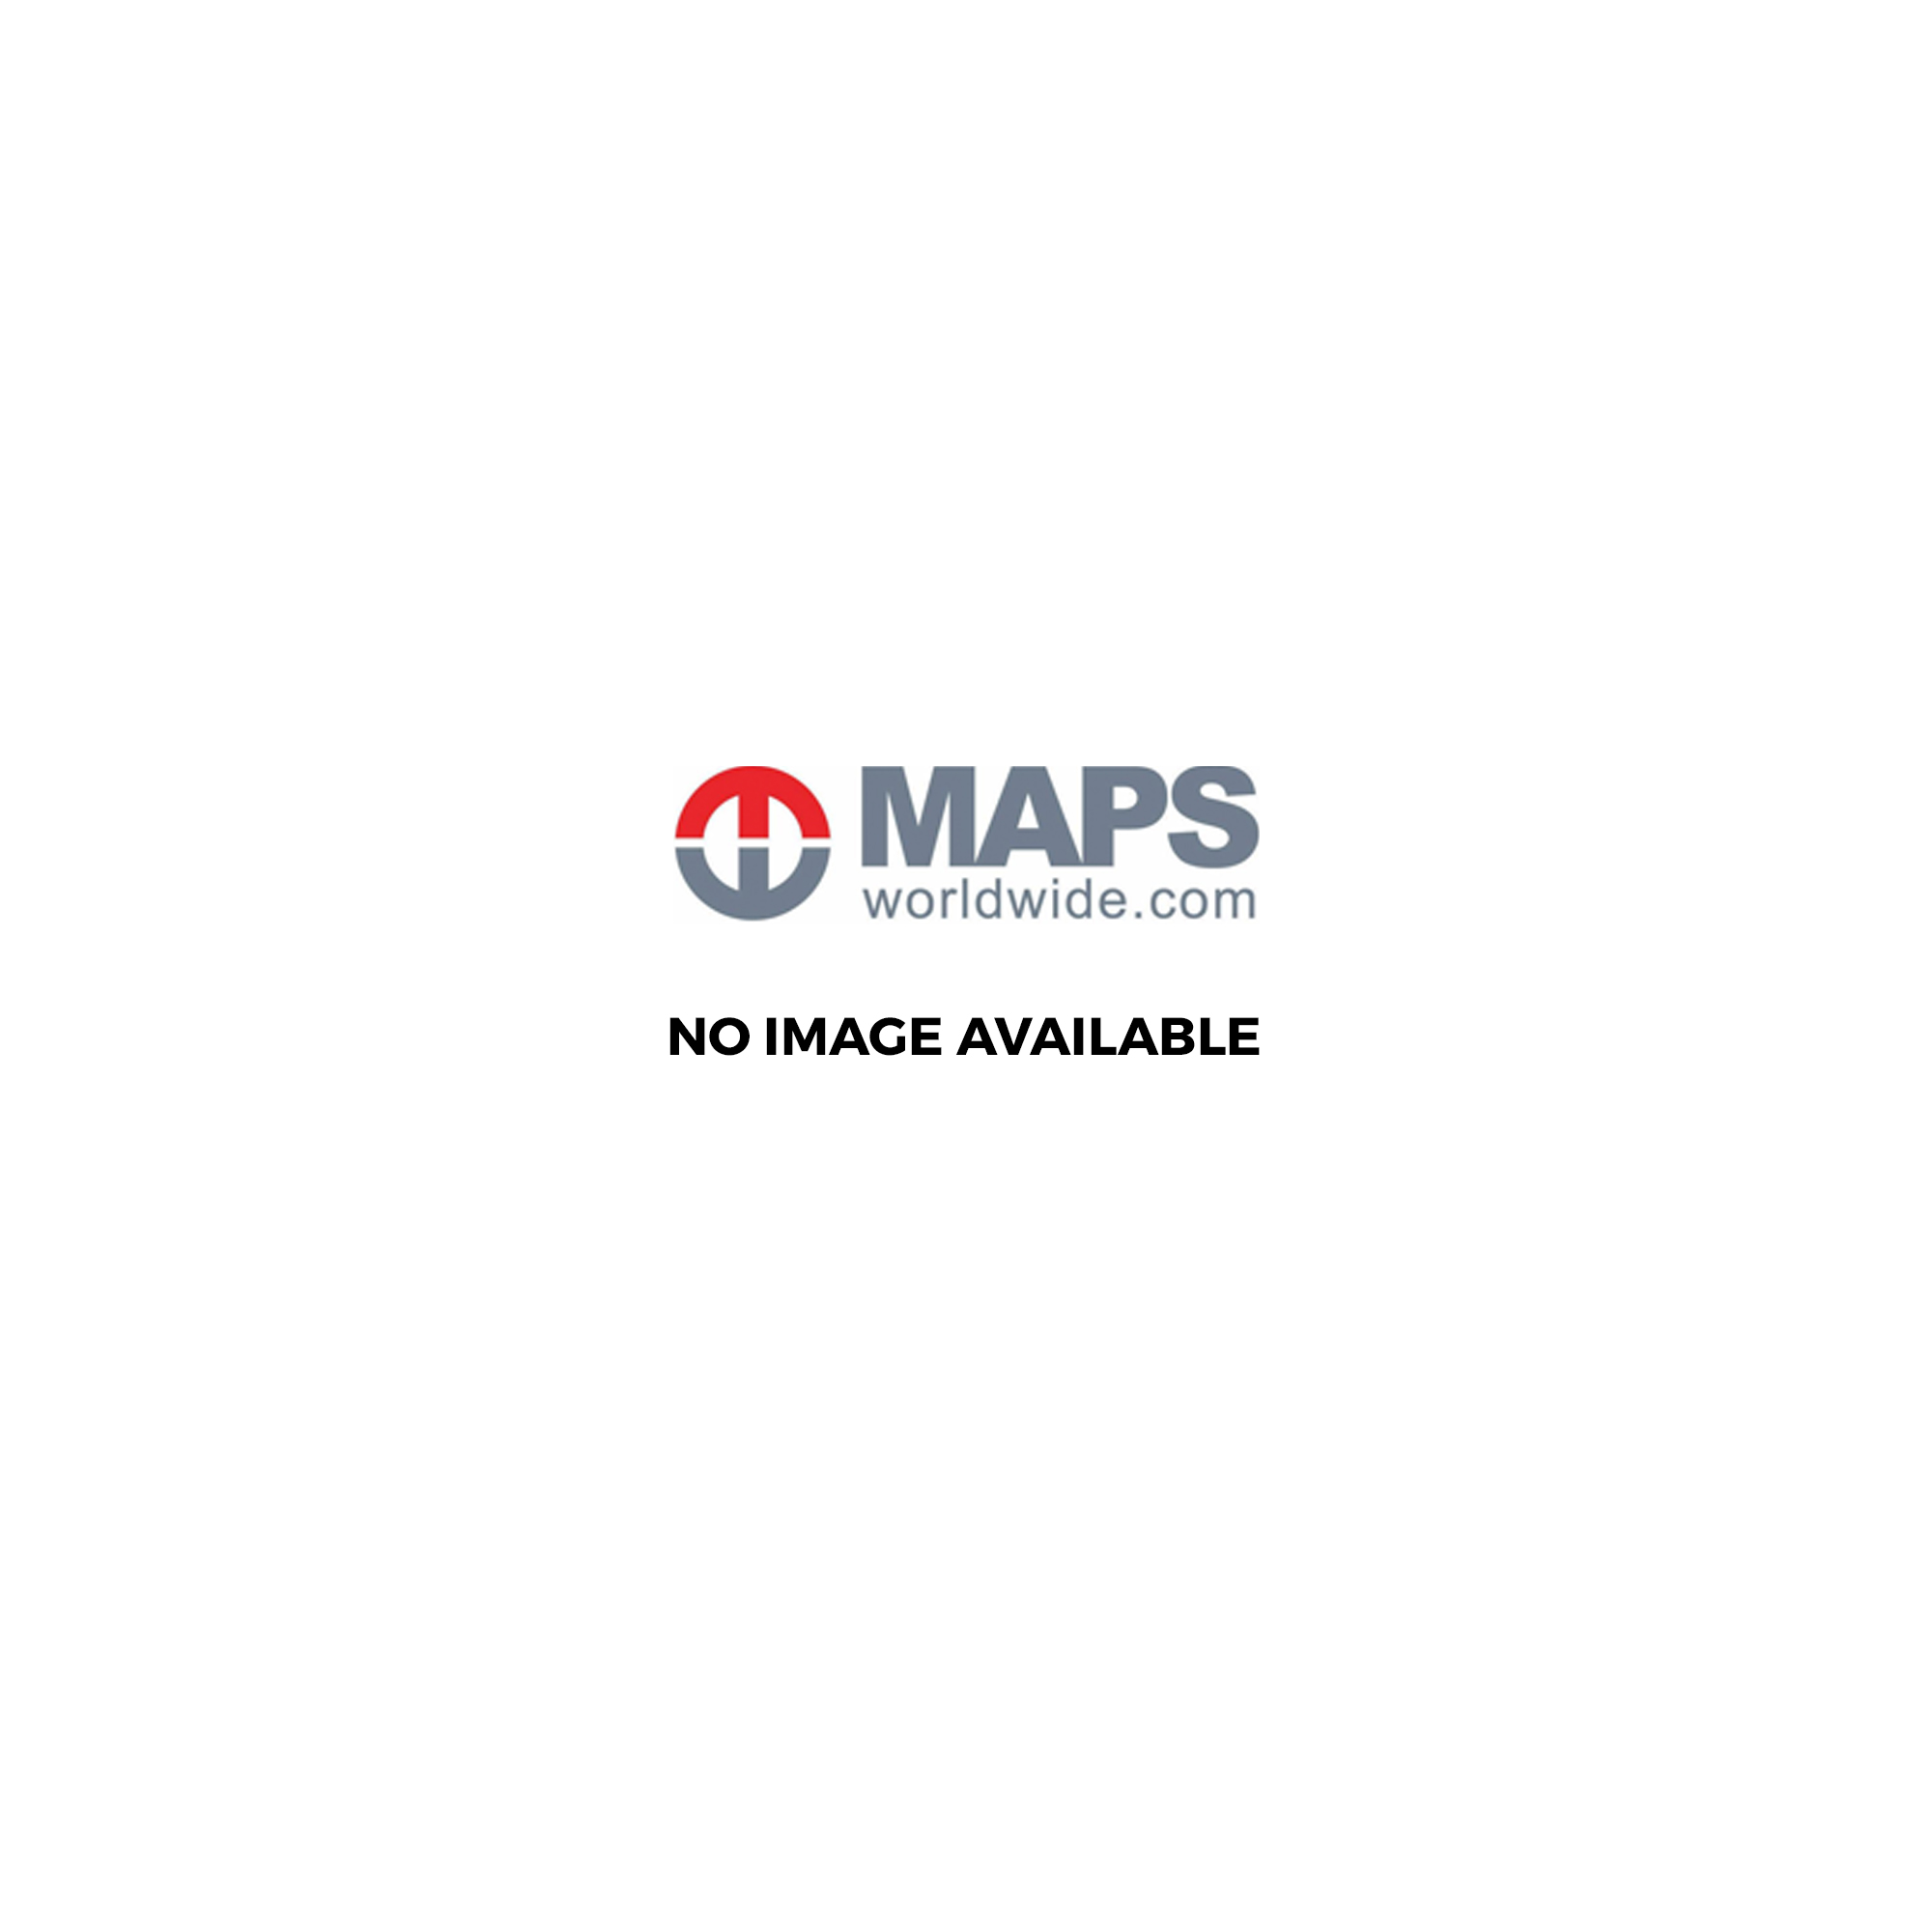 Map69.Gesause Ennstal Alps Pyhrnpass Eisenerz Iron Ore Kompass Hiking Map 69